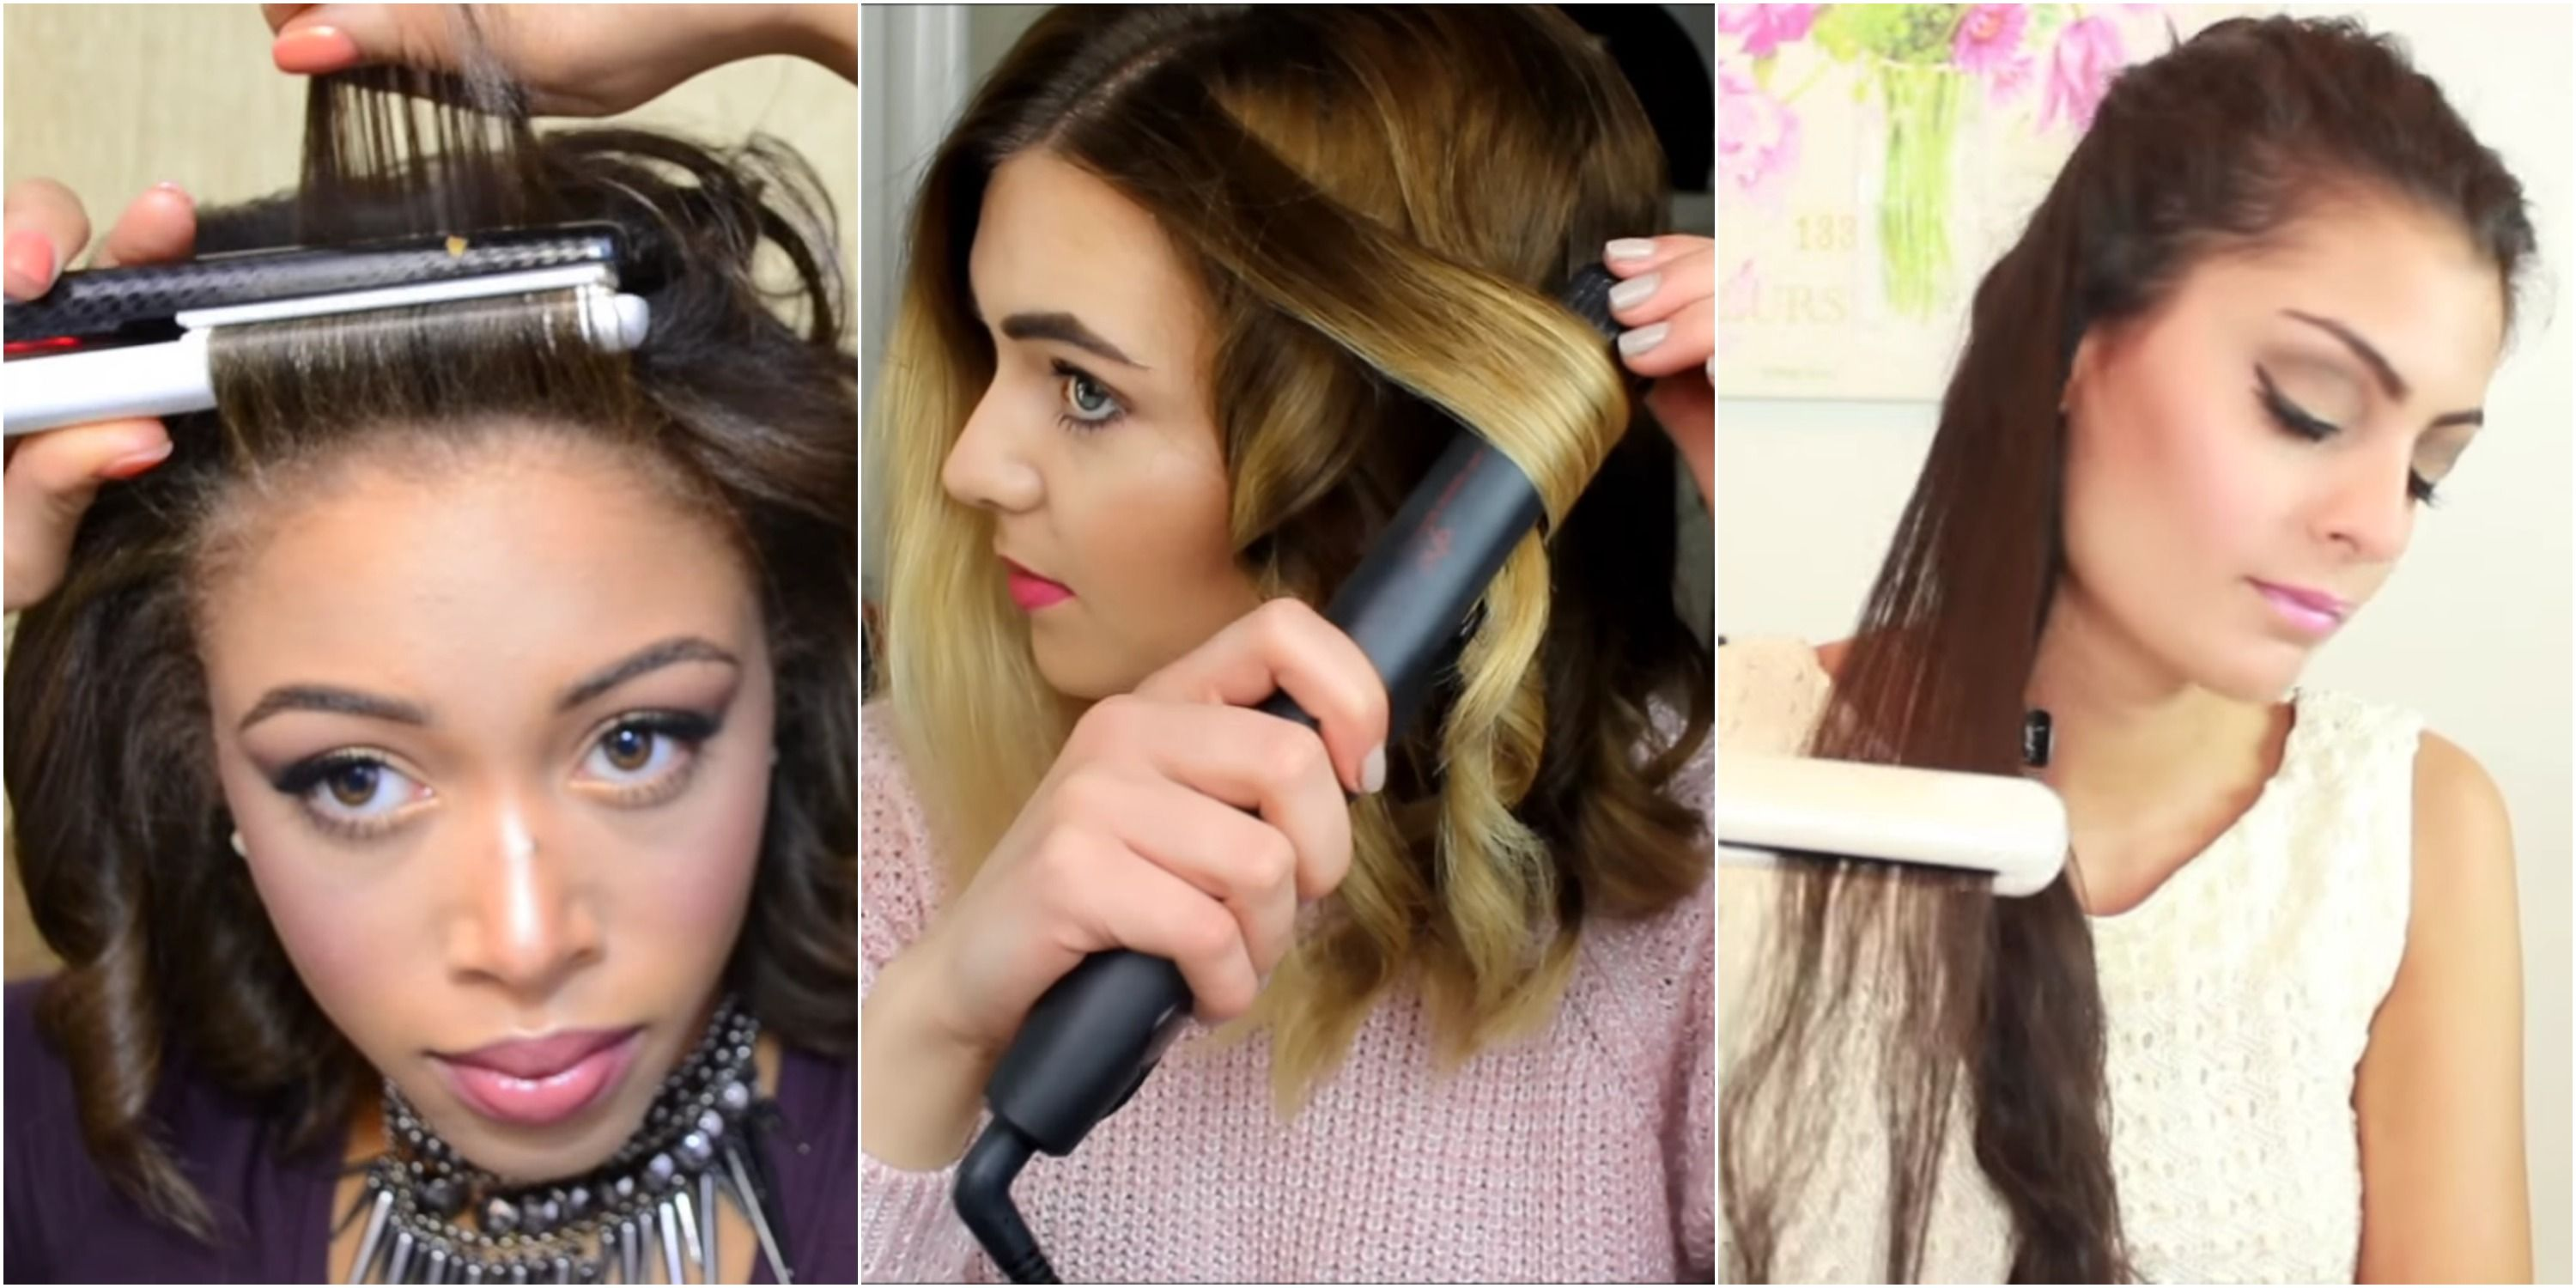 8 ways to use your flat iron — flat iron hacks